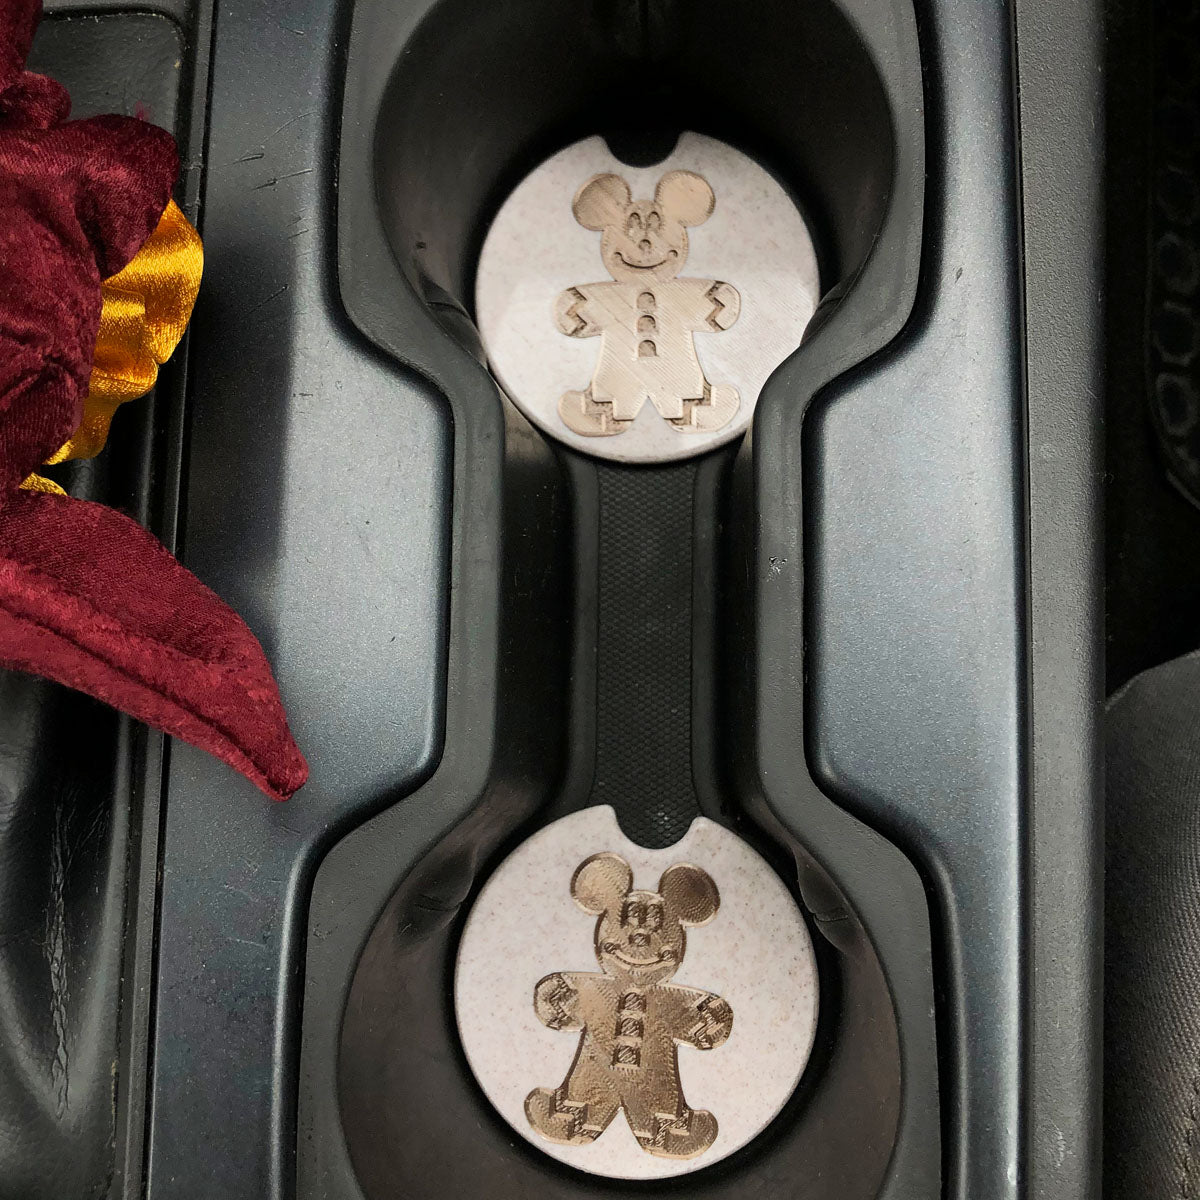 Gingerbread Mouse Car Coasters - Set of 2